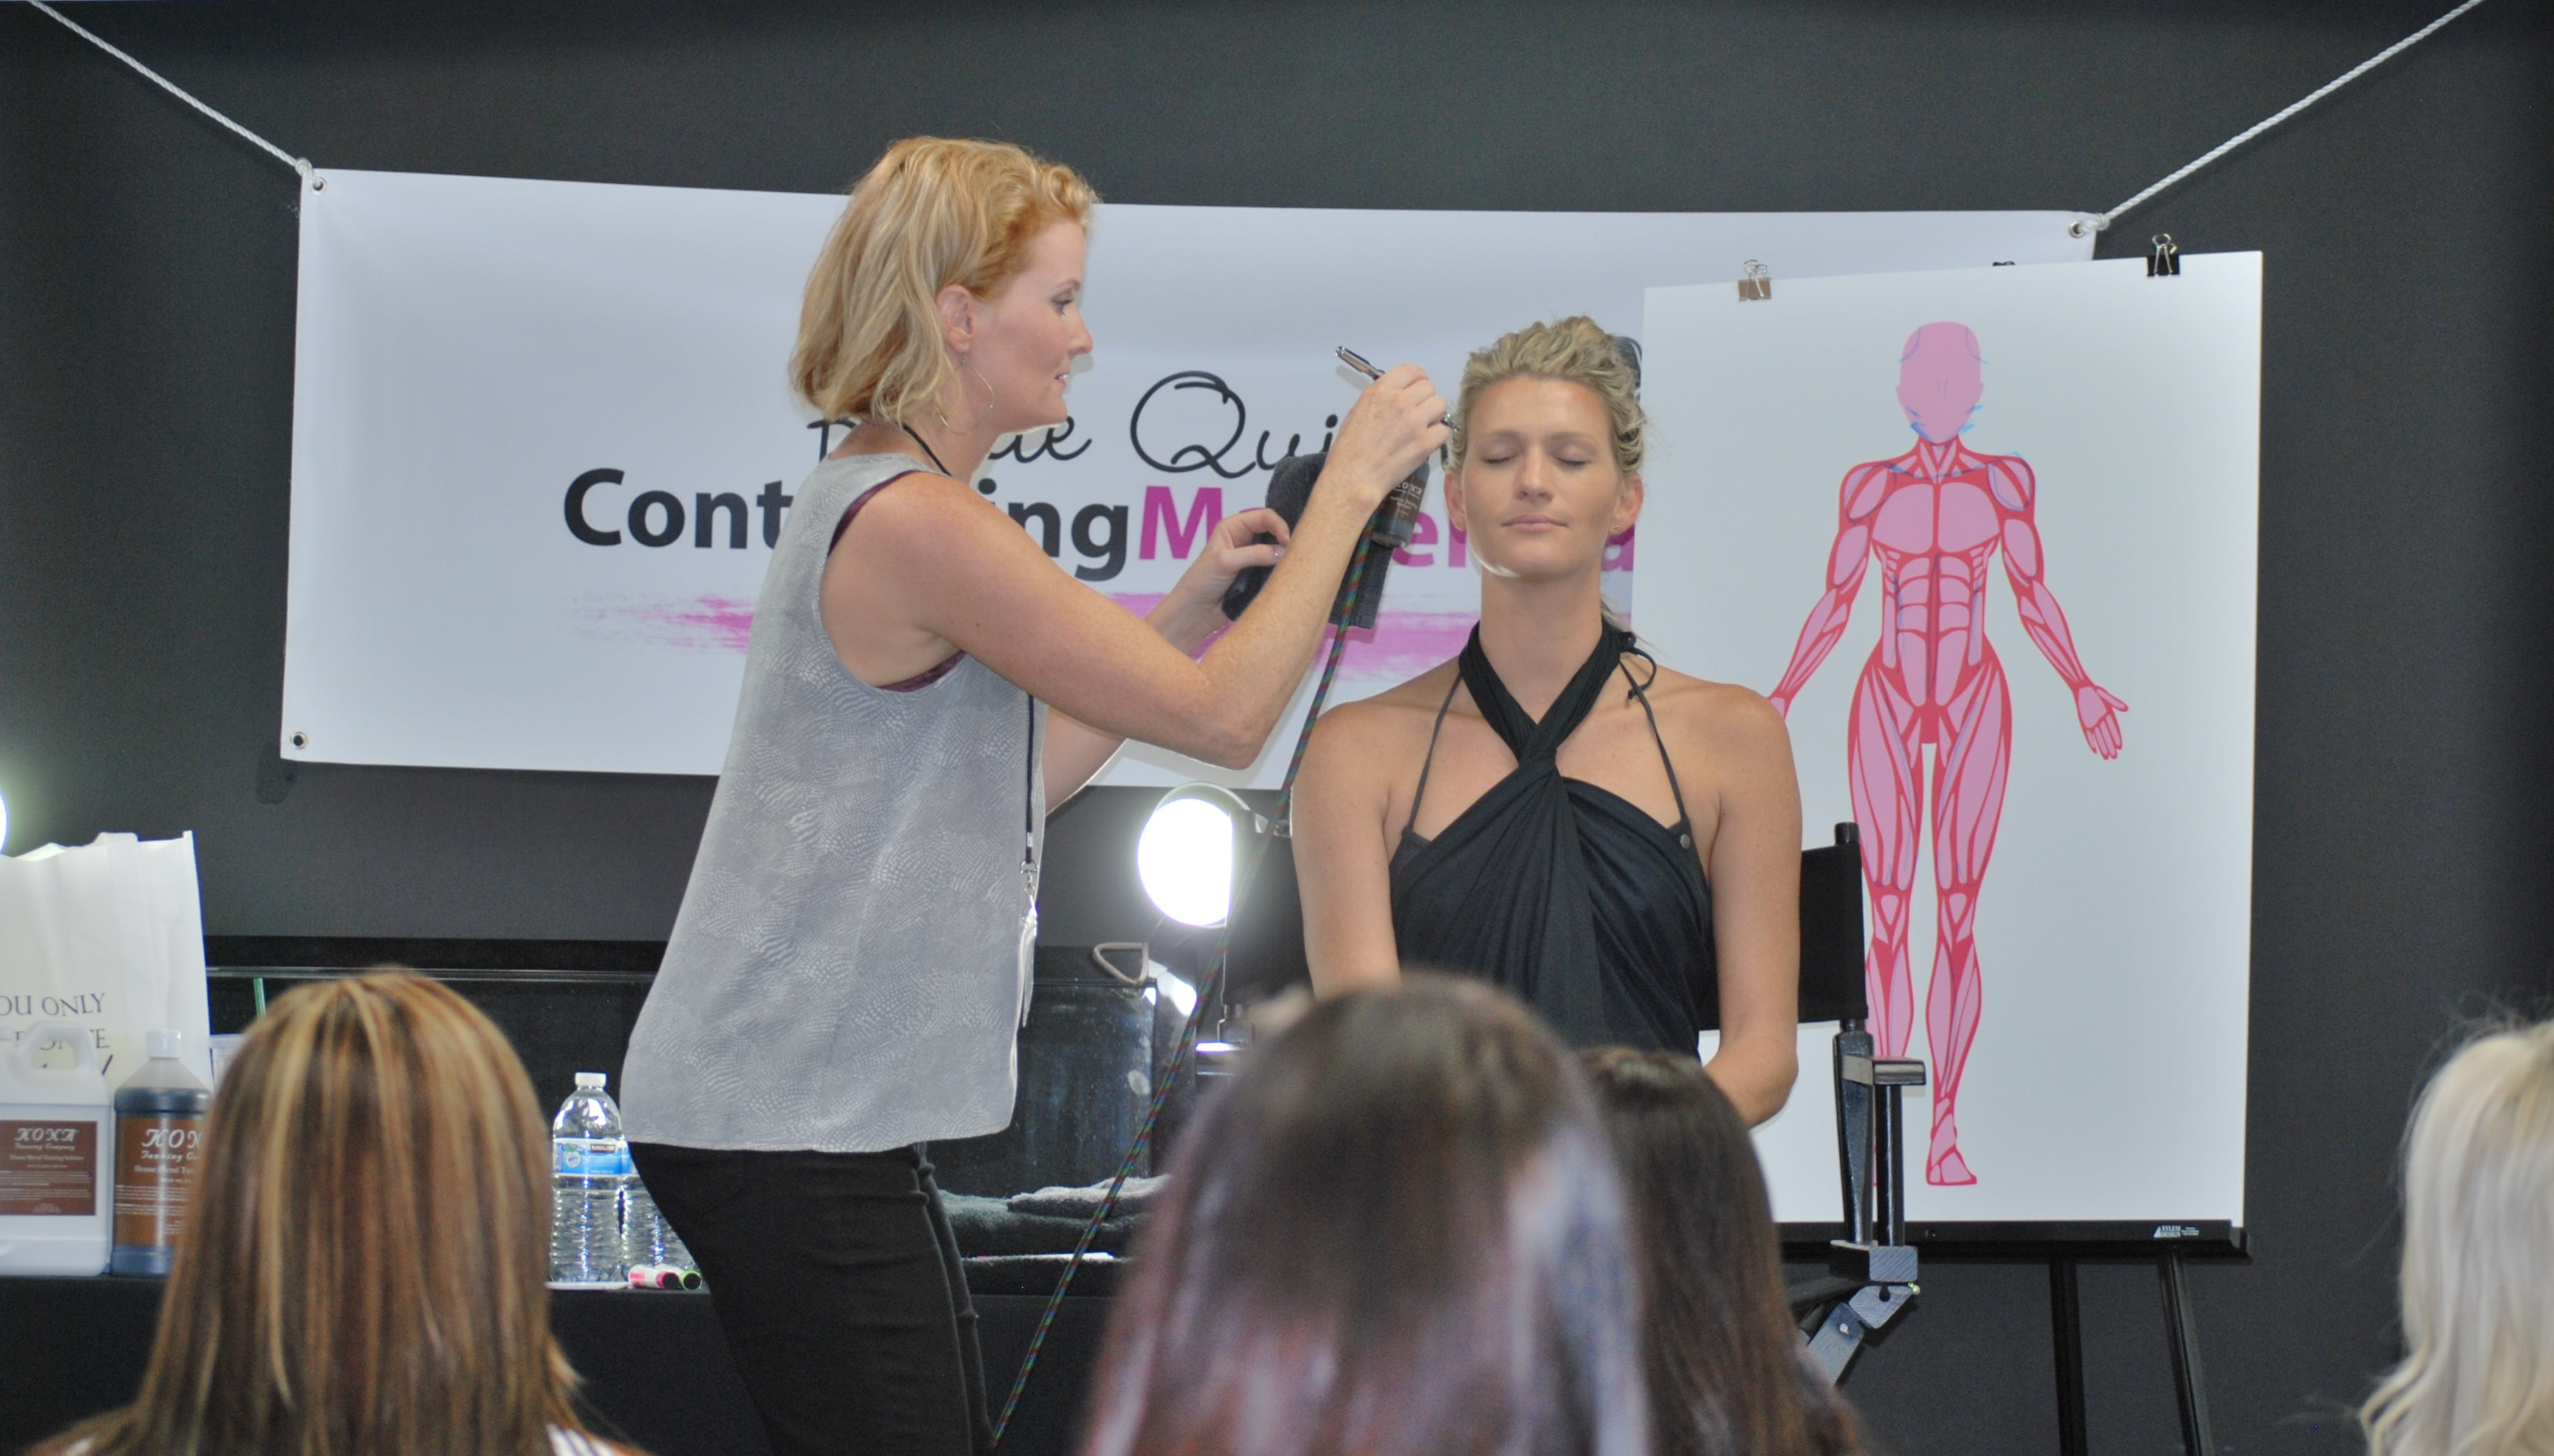 Learn to contour with your spray tans with Katie Quinn's Spray Tan Contouring Master Class in Orange County, California